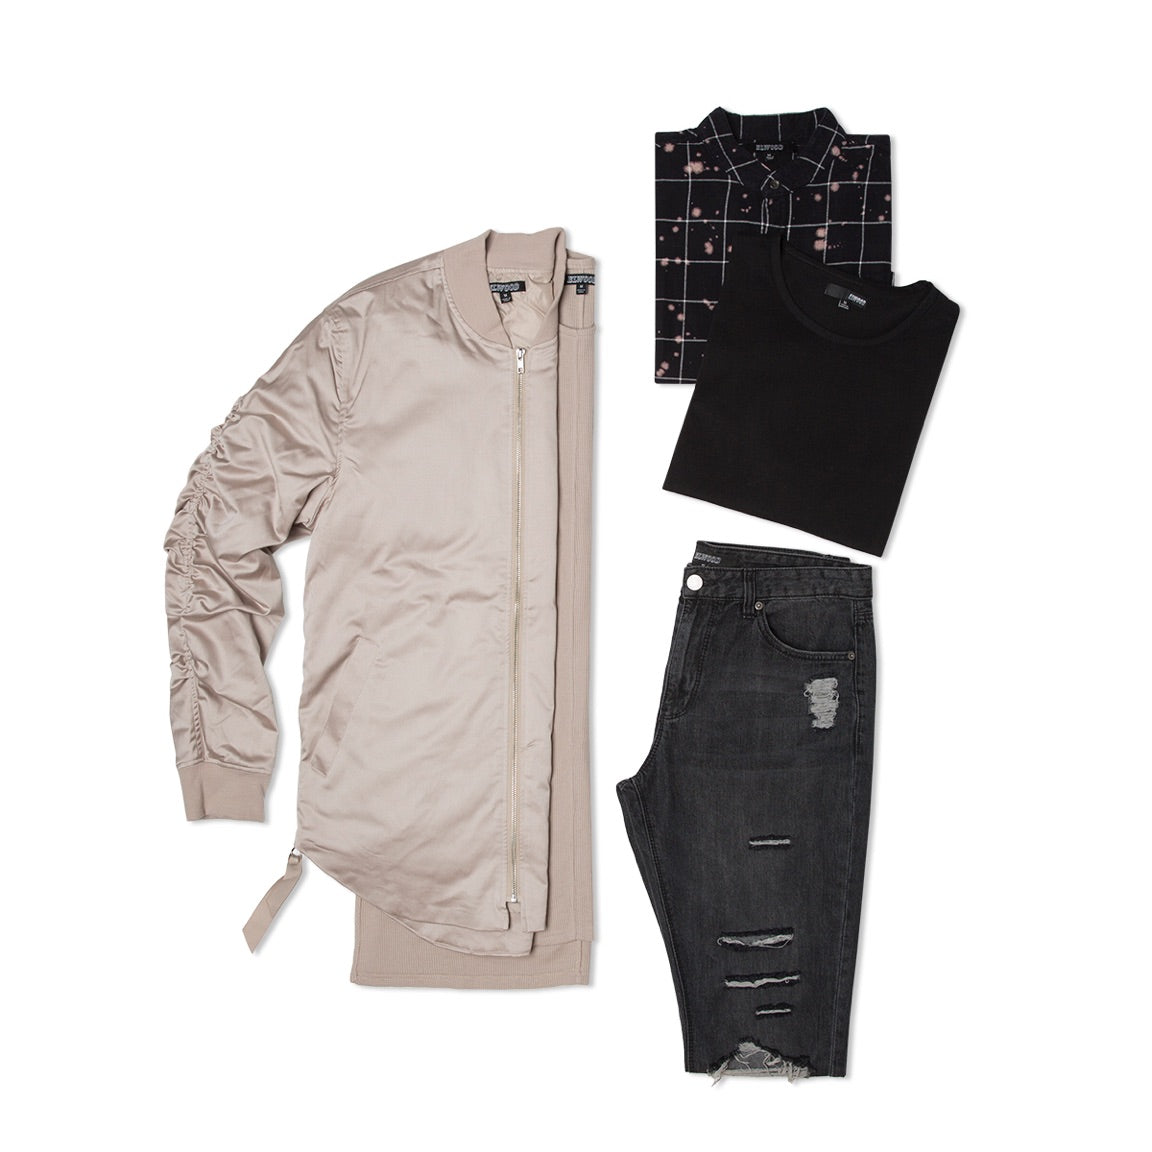 elwood clothing hot box 12 curved hem bomber jacket and more